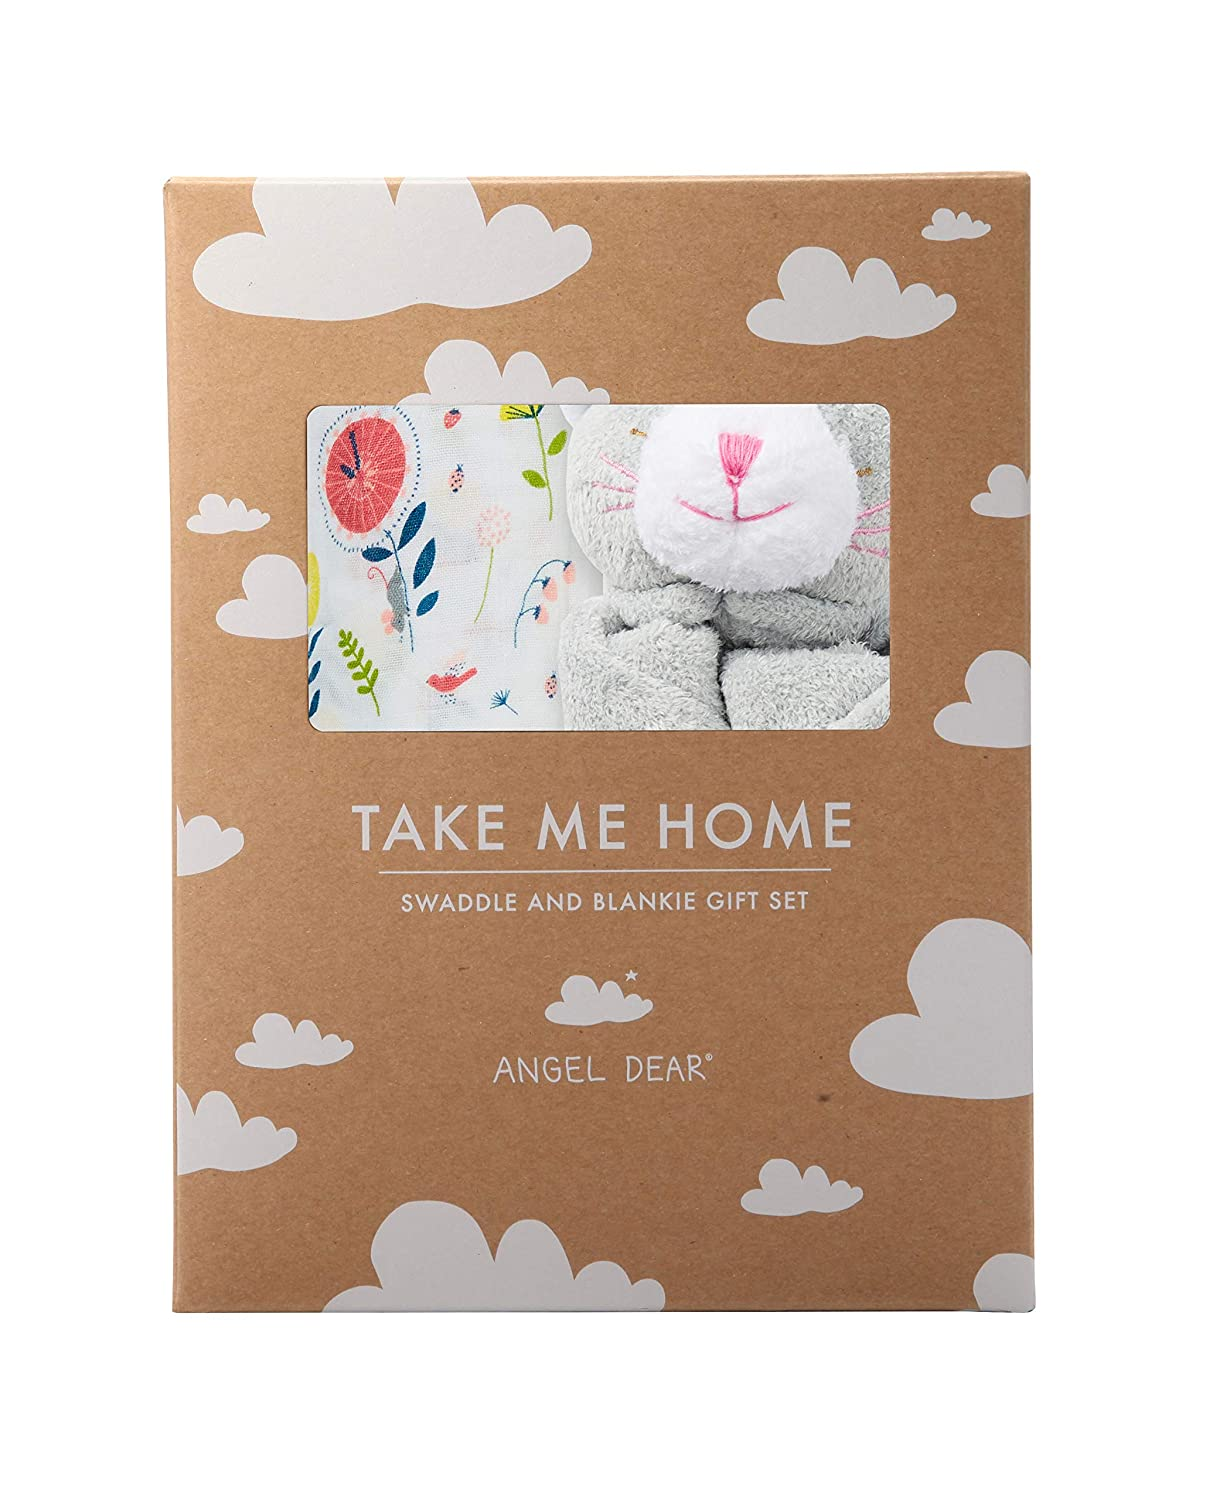 Angel Dear Swaddle and Blankie Gift Set, Hickory Dickory Dock with Grey Kitty